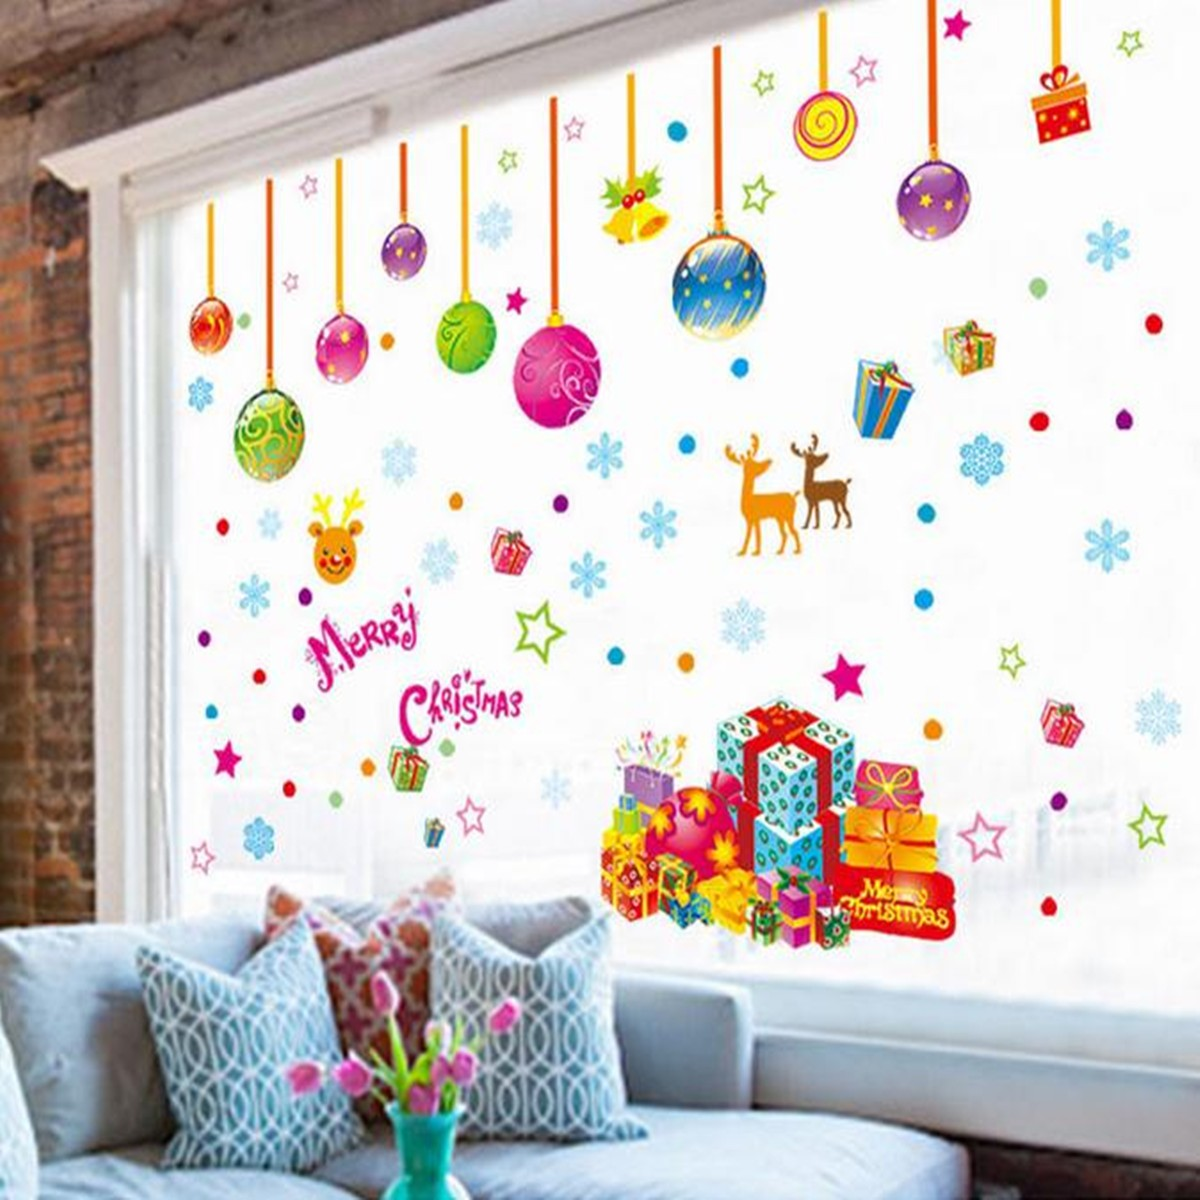 How To Decorate Living Room Window For Christmas